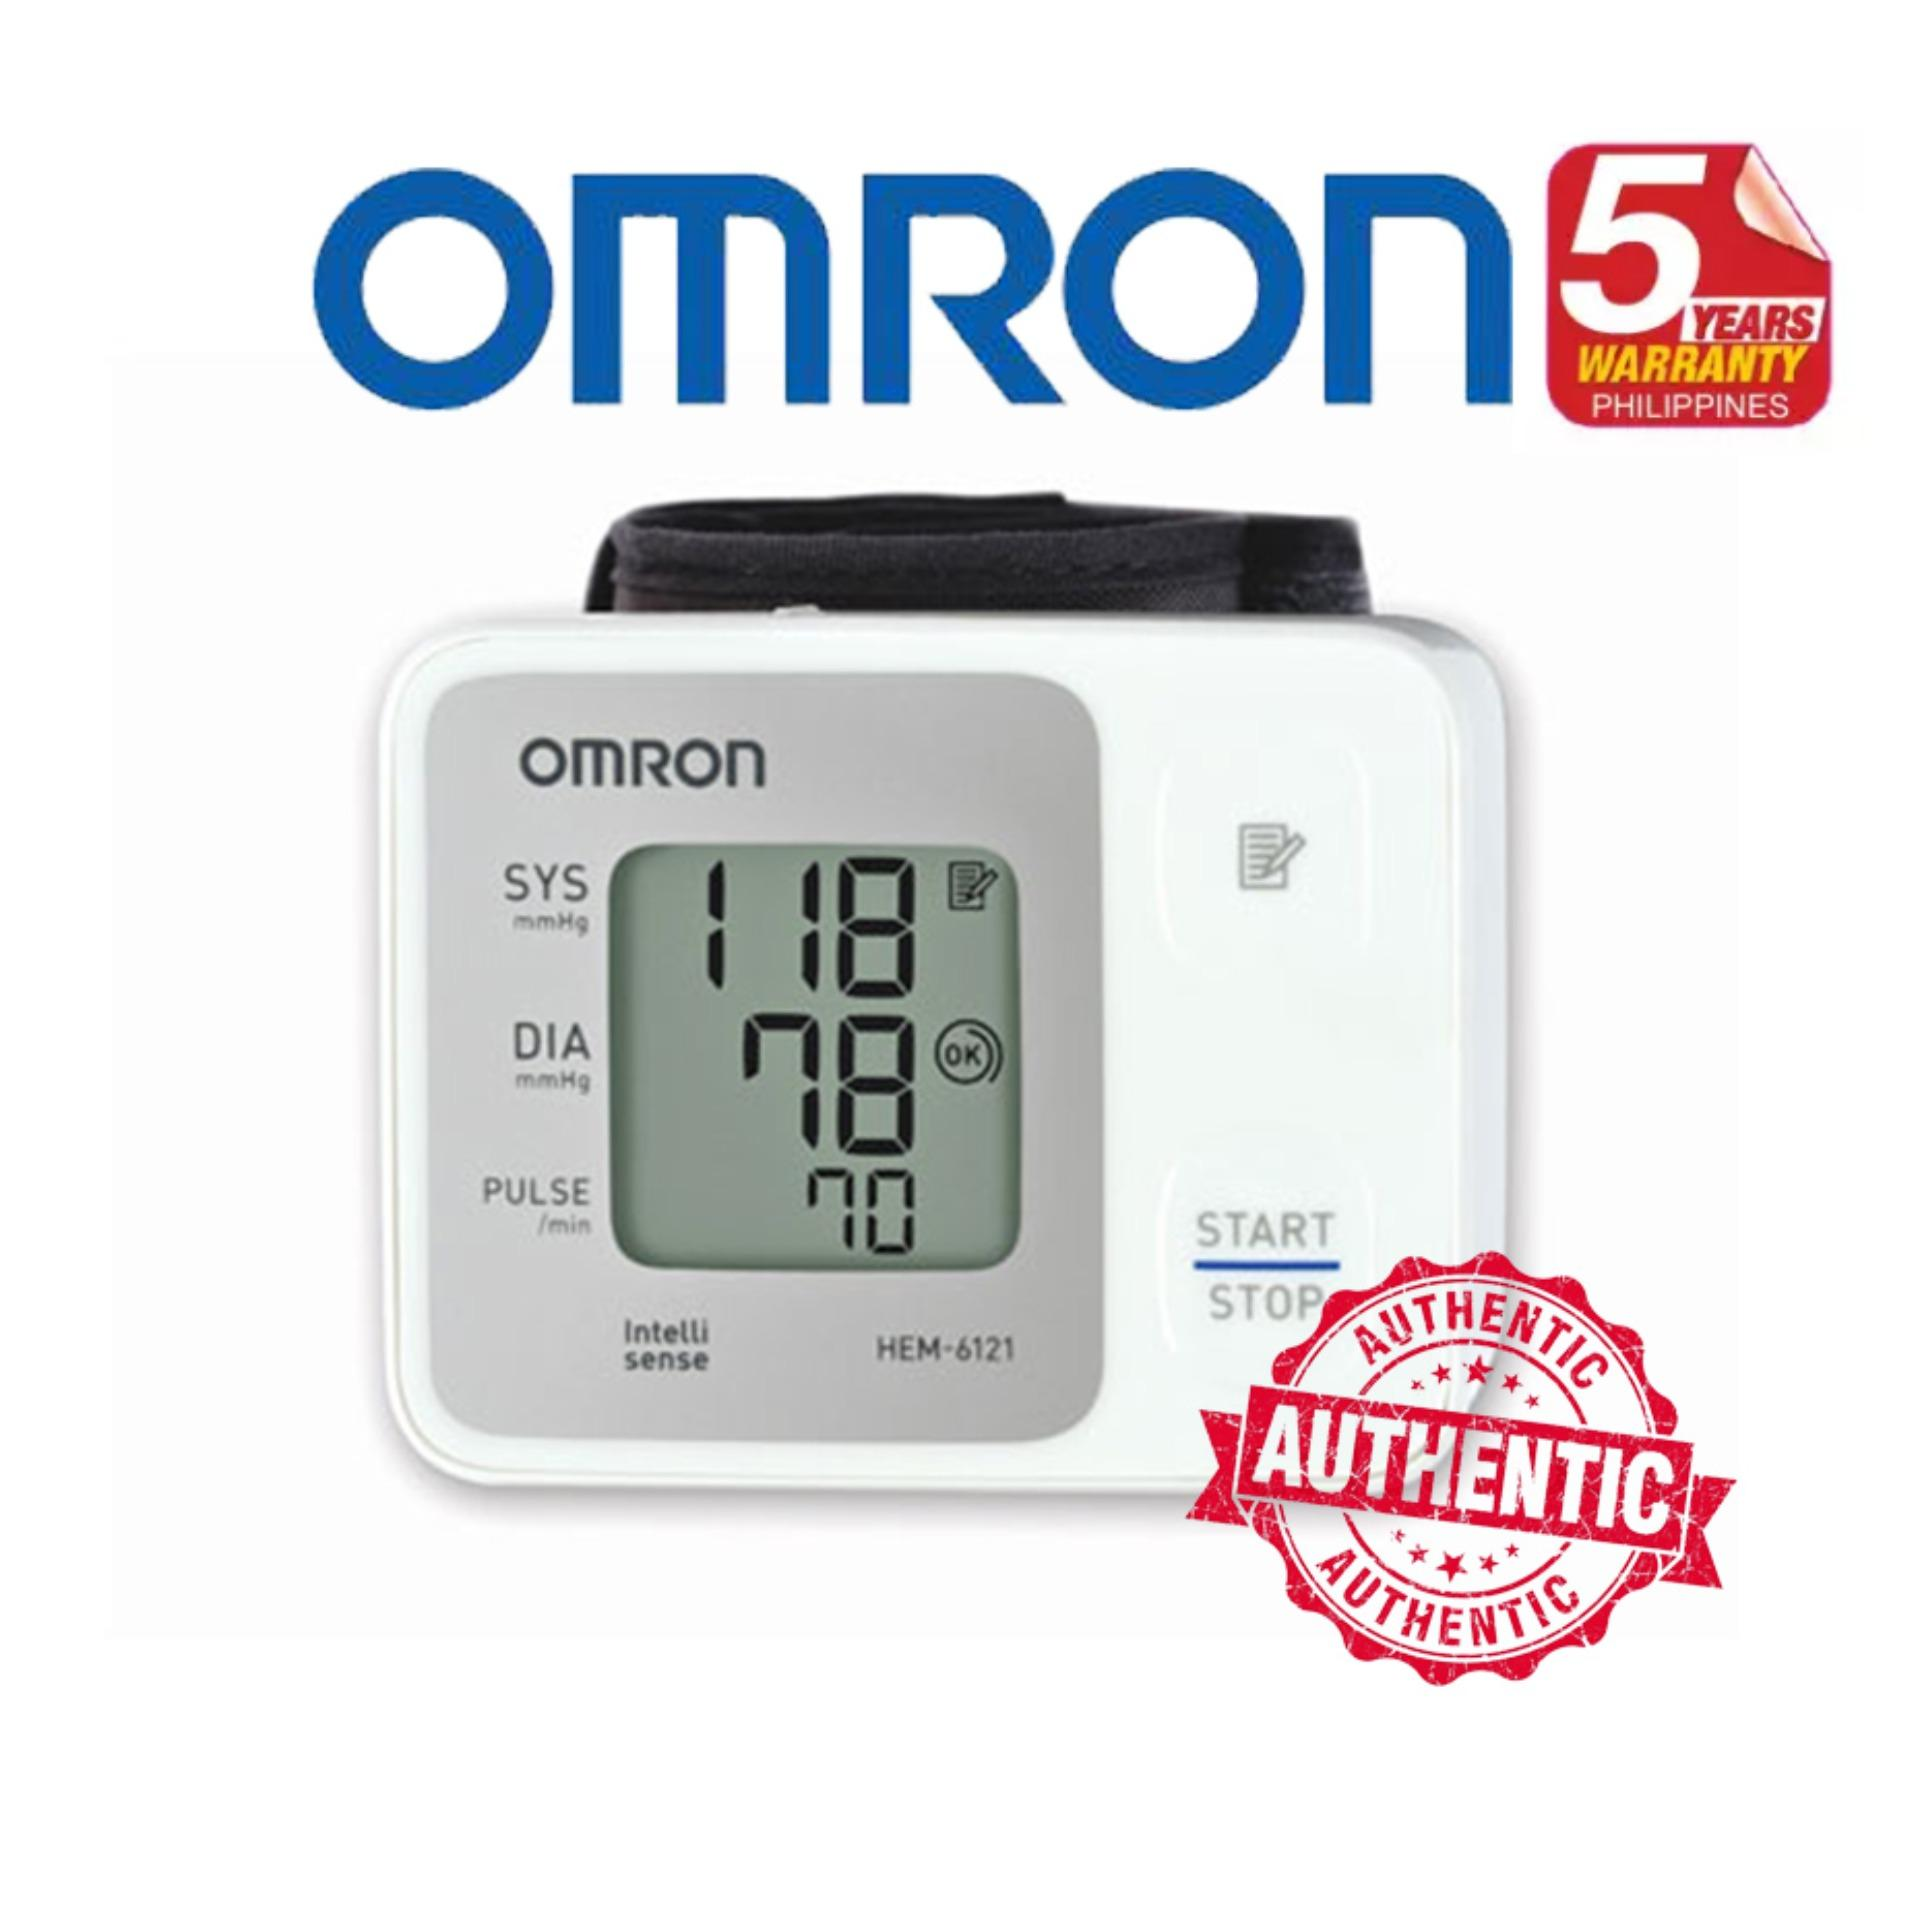 Omron Philippines Price List Health Care Electronics Hem 7211 Automatic Blood Pressure Monitor Wrist 6121 Bp App W 5 Years